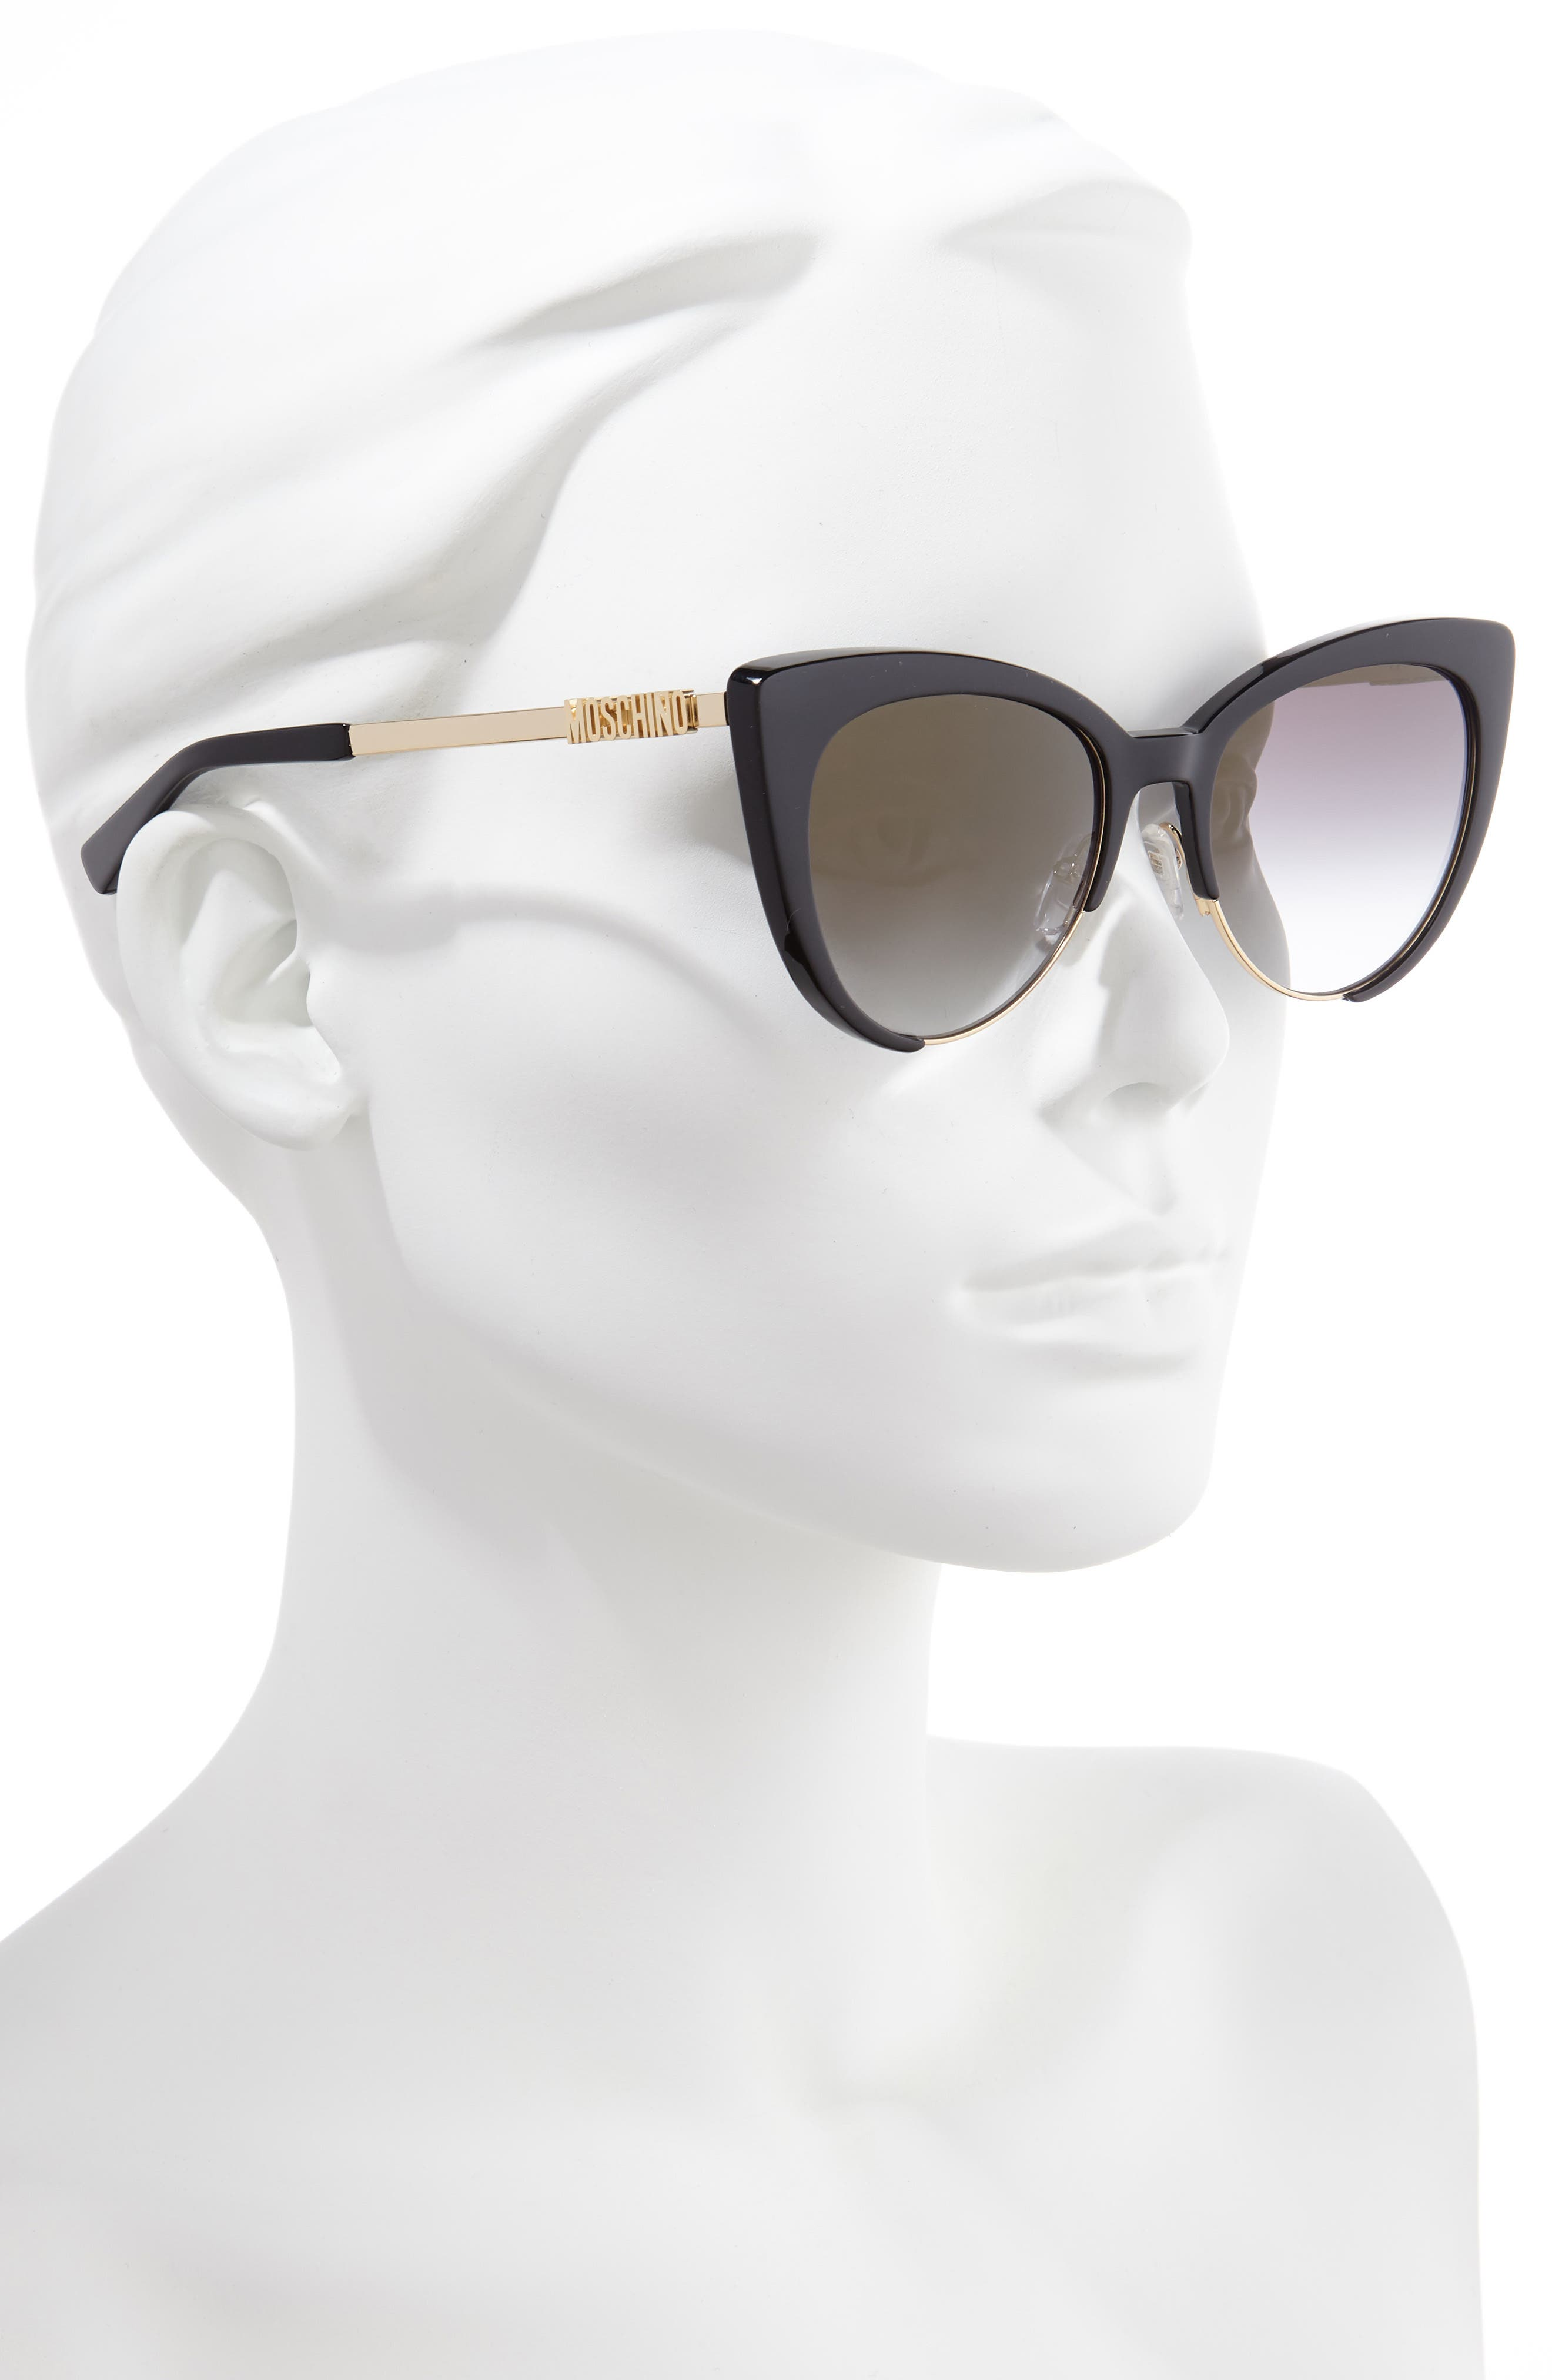 MOSCHINO, 55mm Cat Eye Sunglasses, Alternate thumbnail 2, color, BLACK